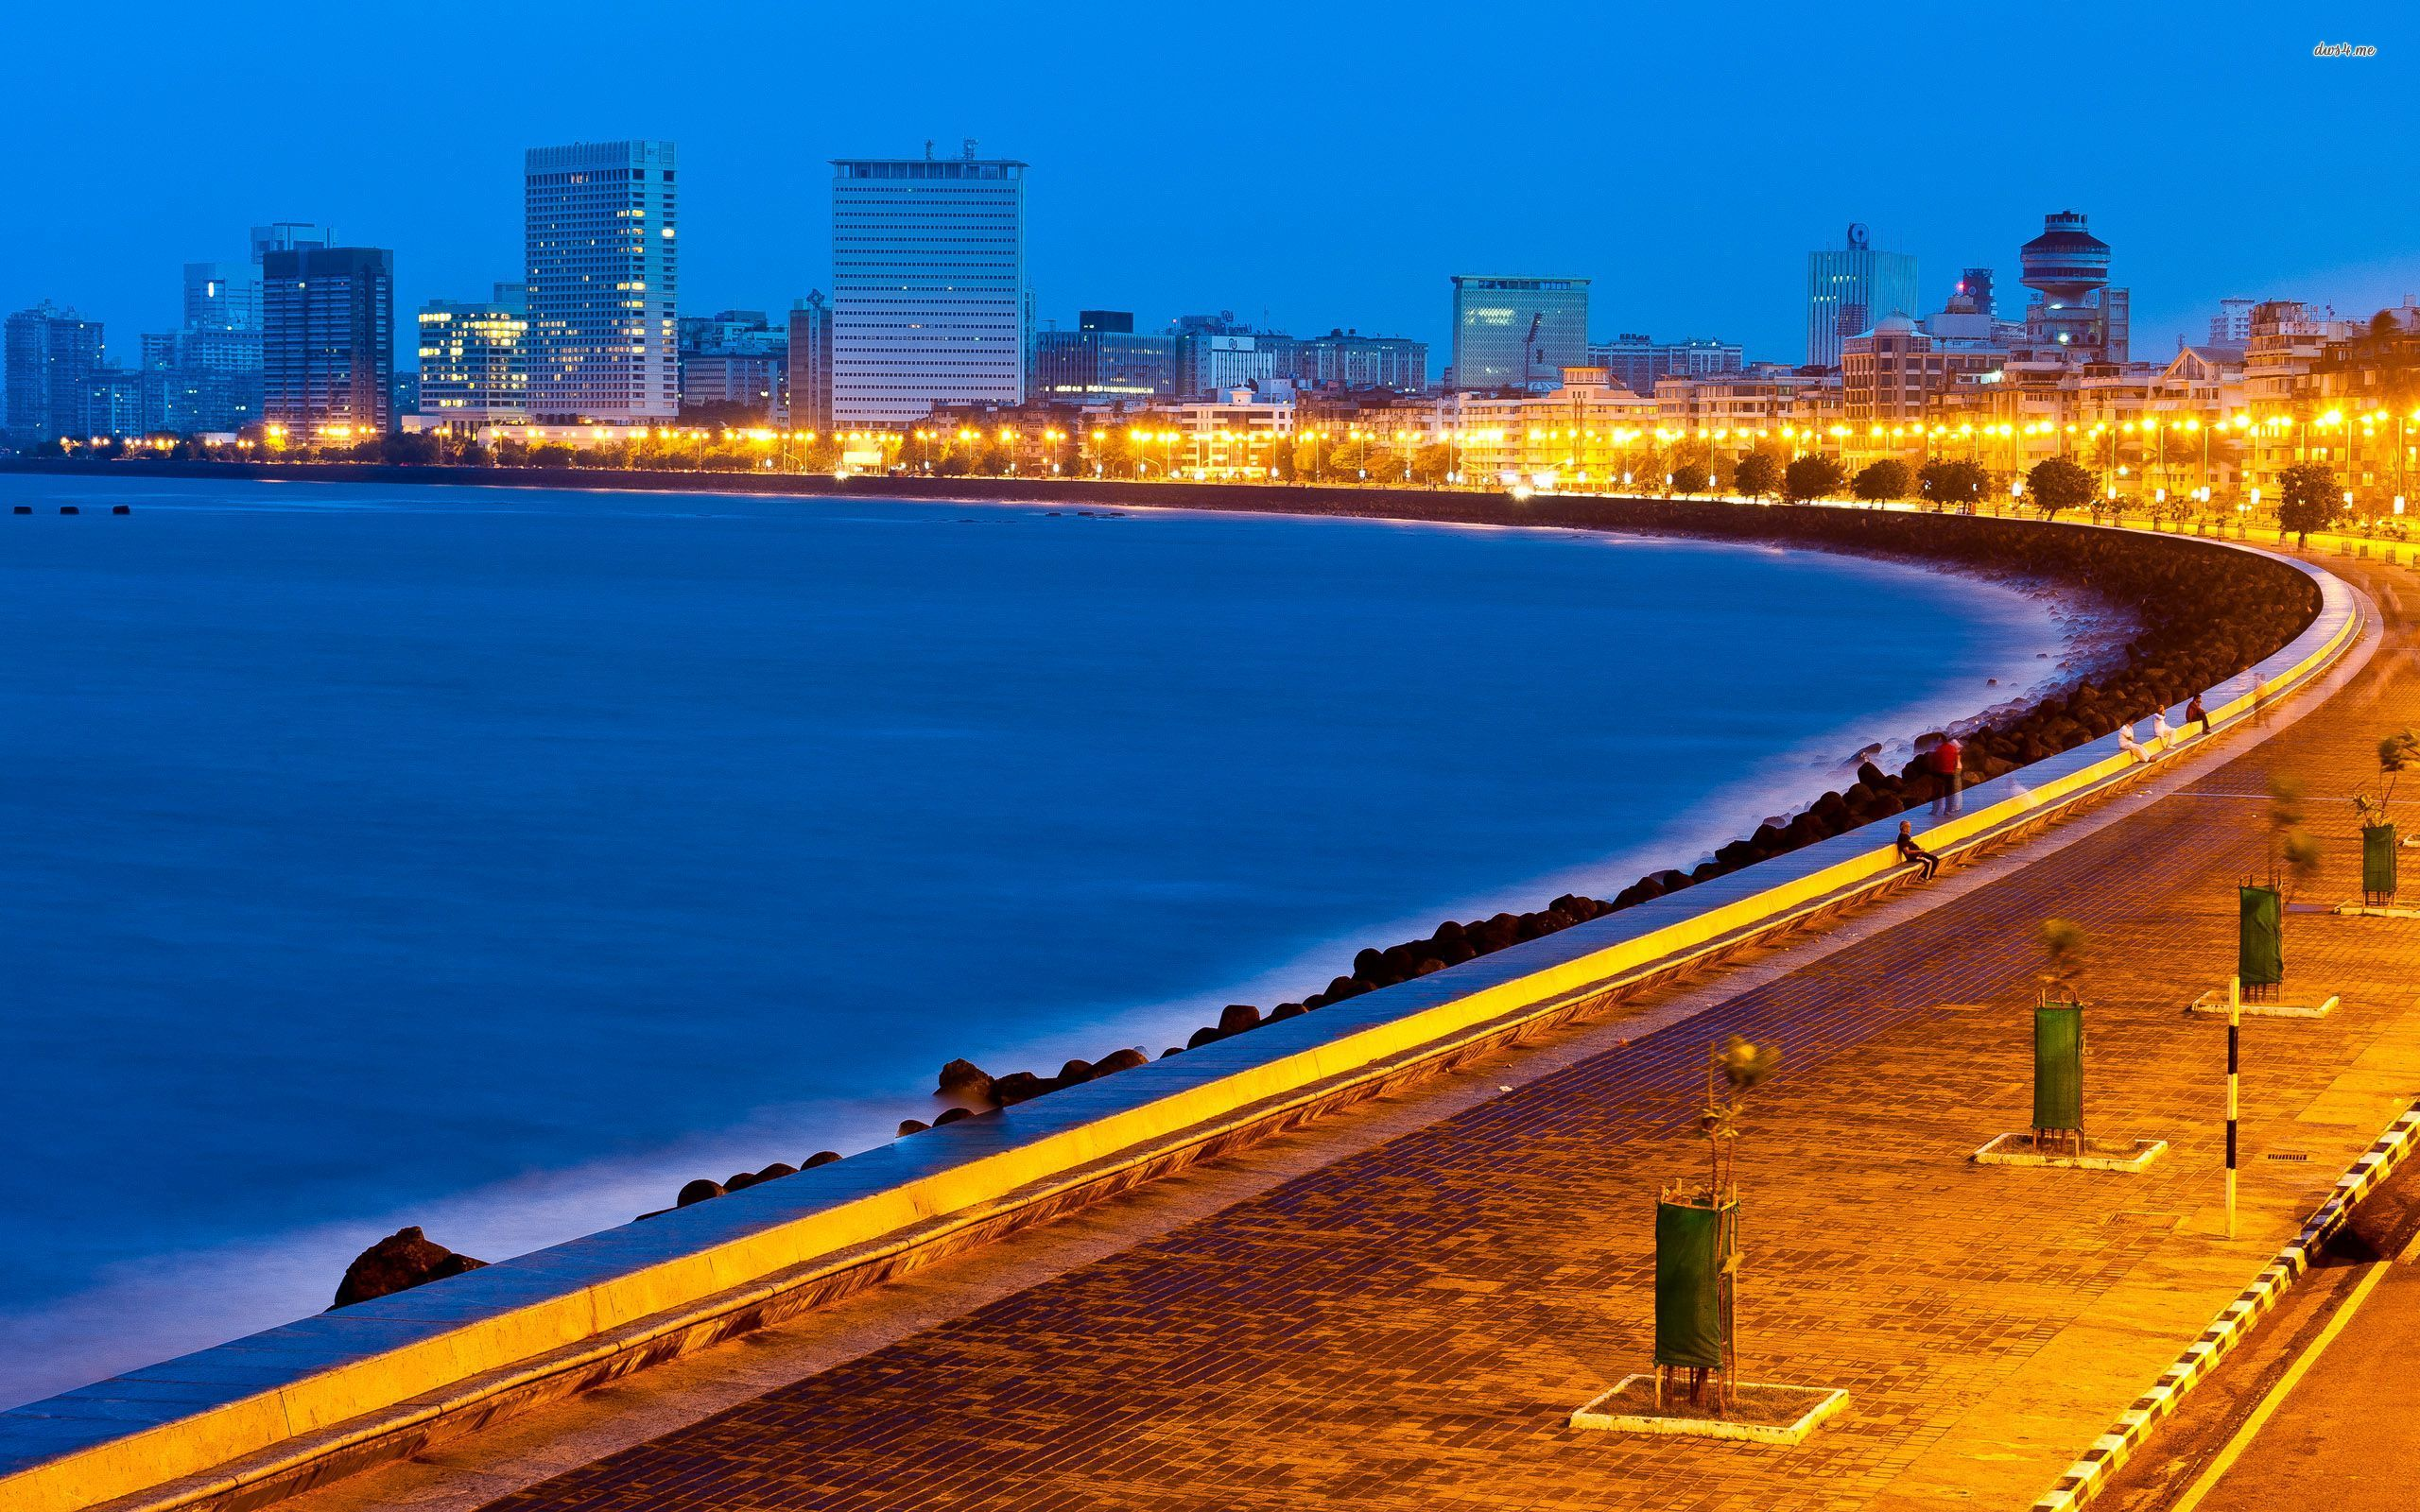 Marine Drive in Mumbai wallpaper   Beach wallpapers   48611 2560x1600